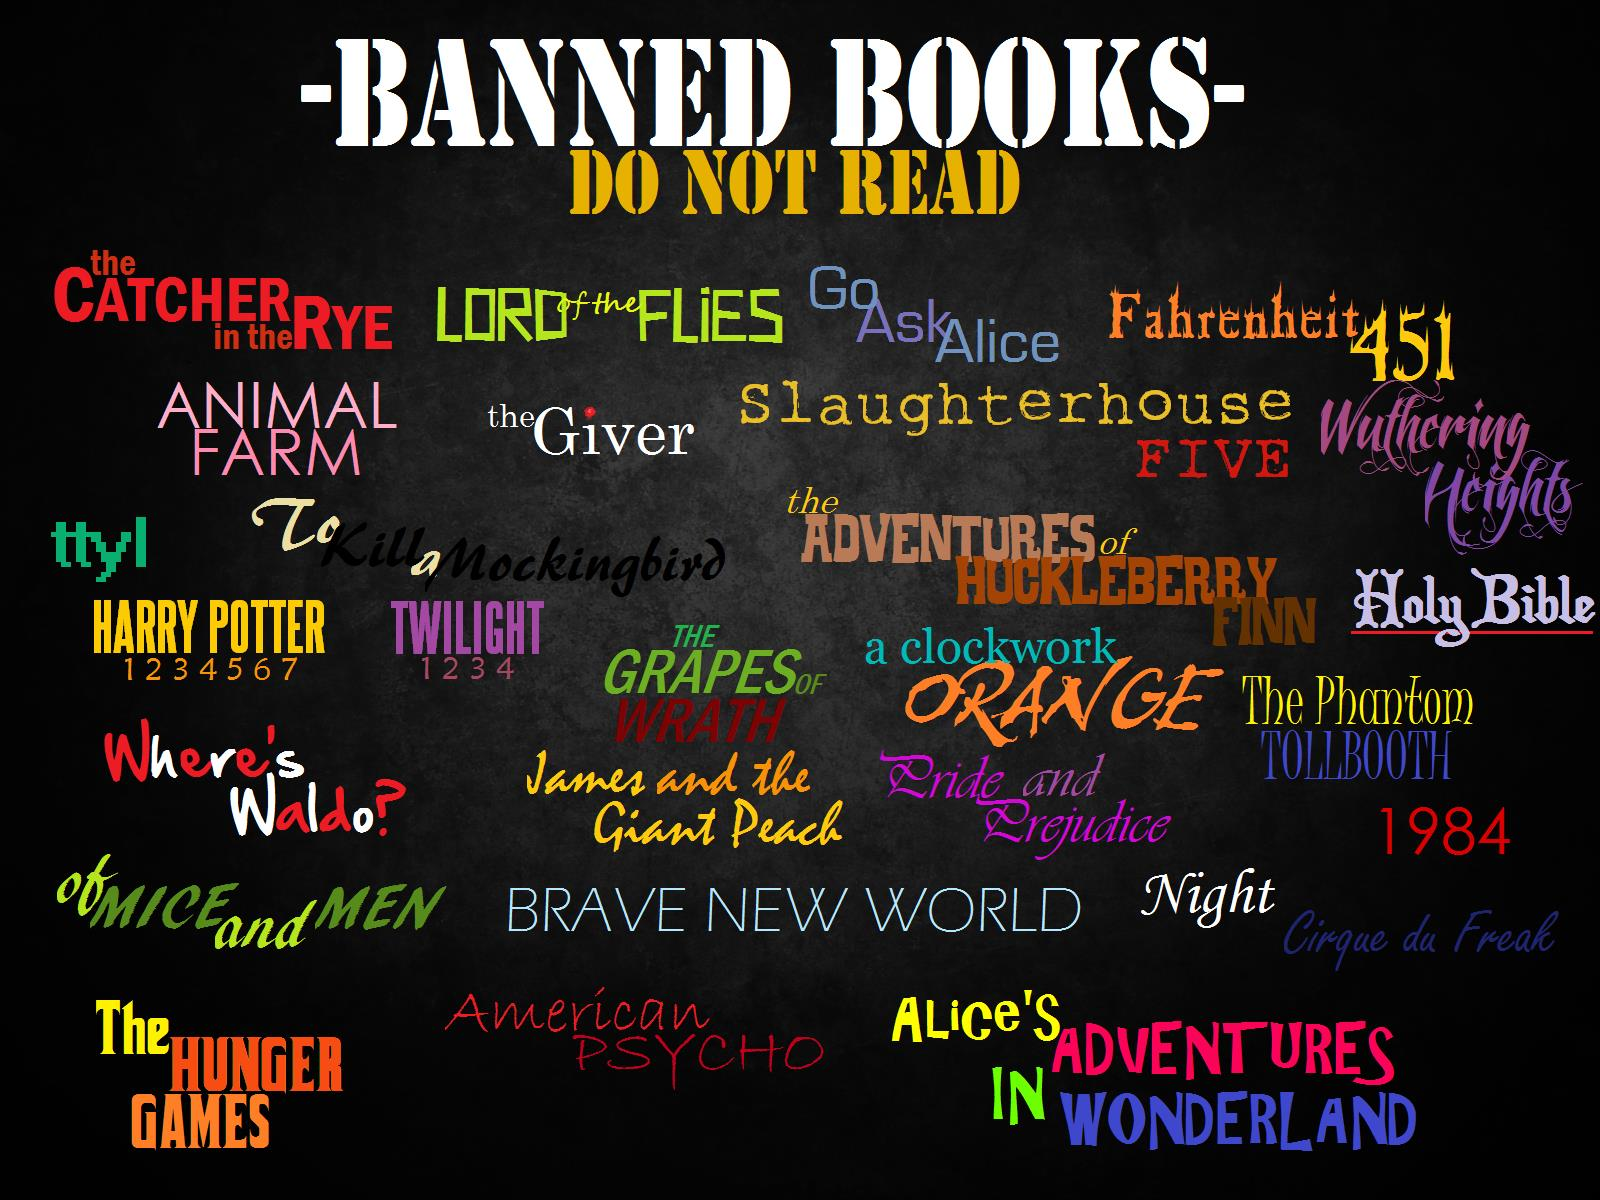 essay on banned books